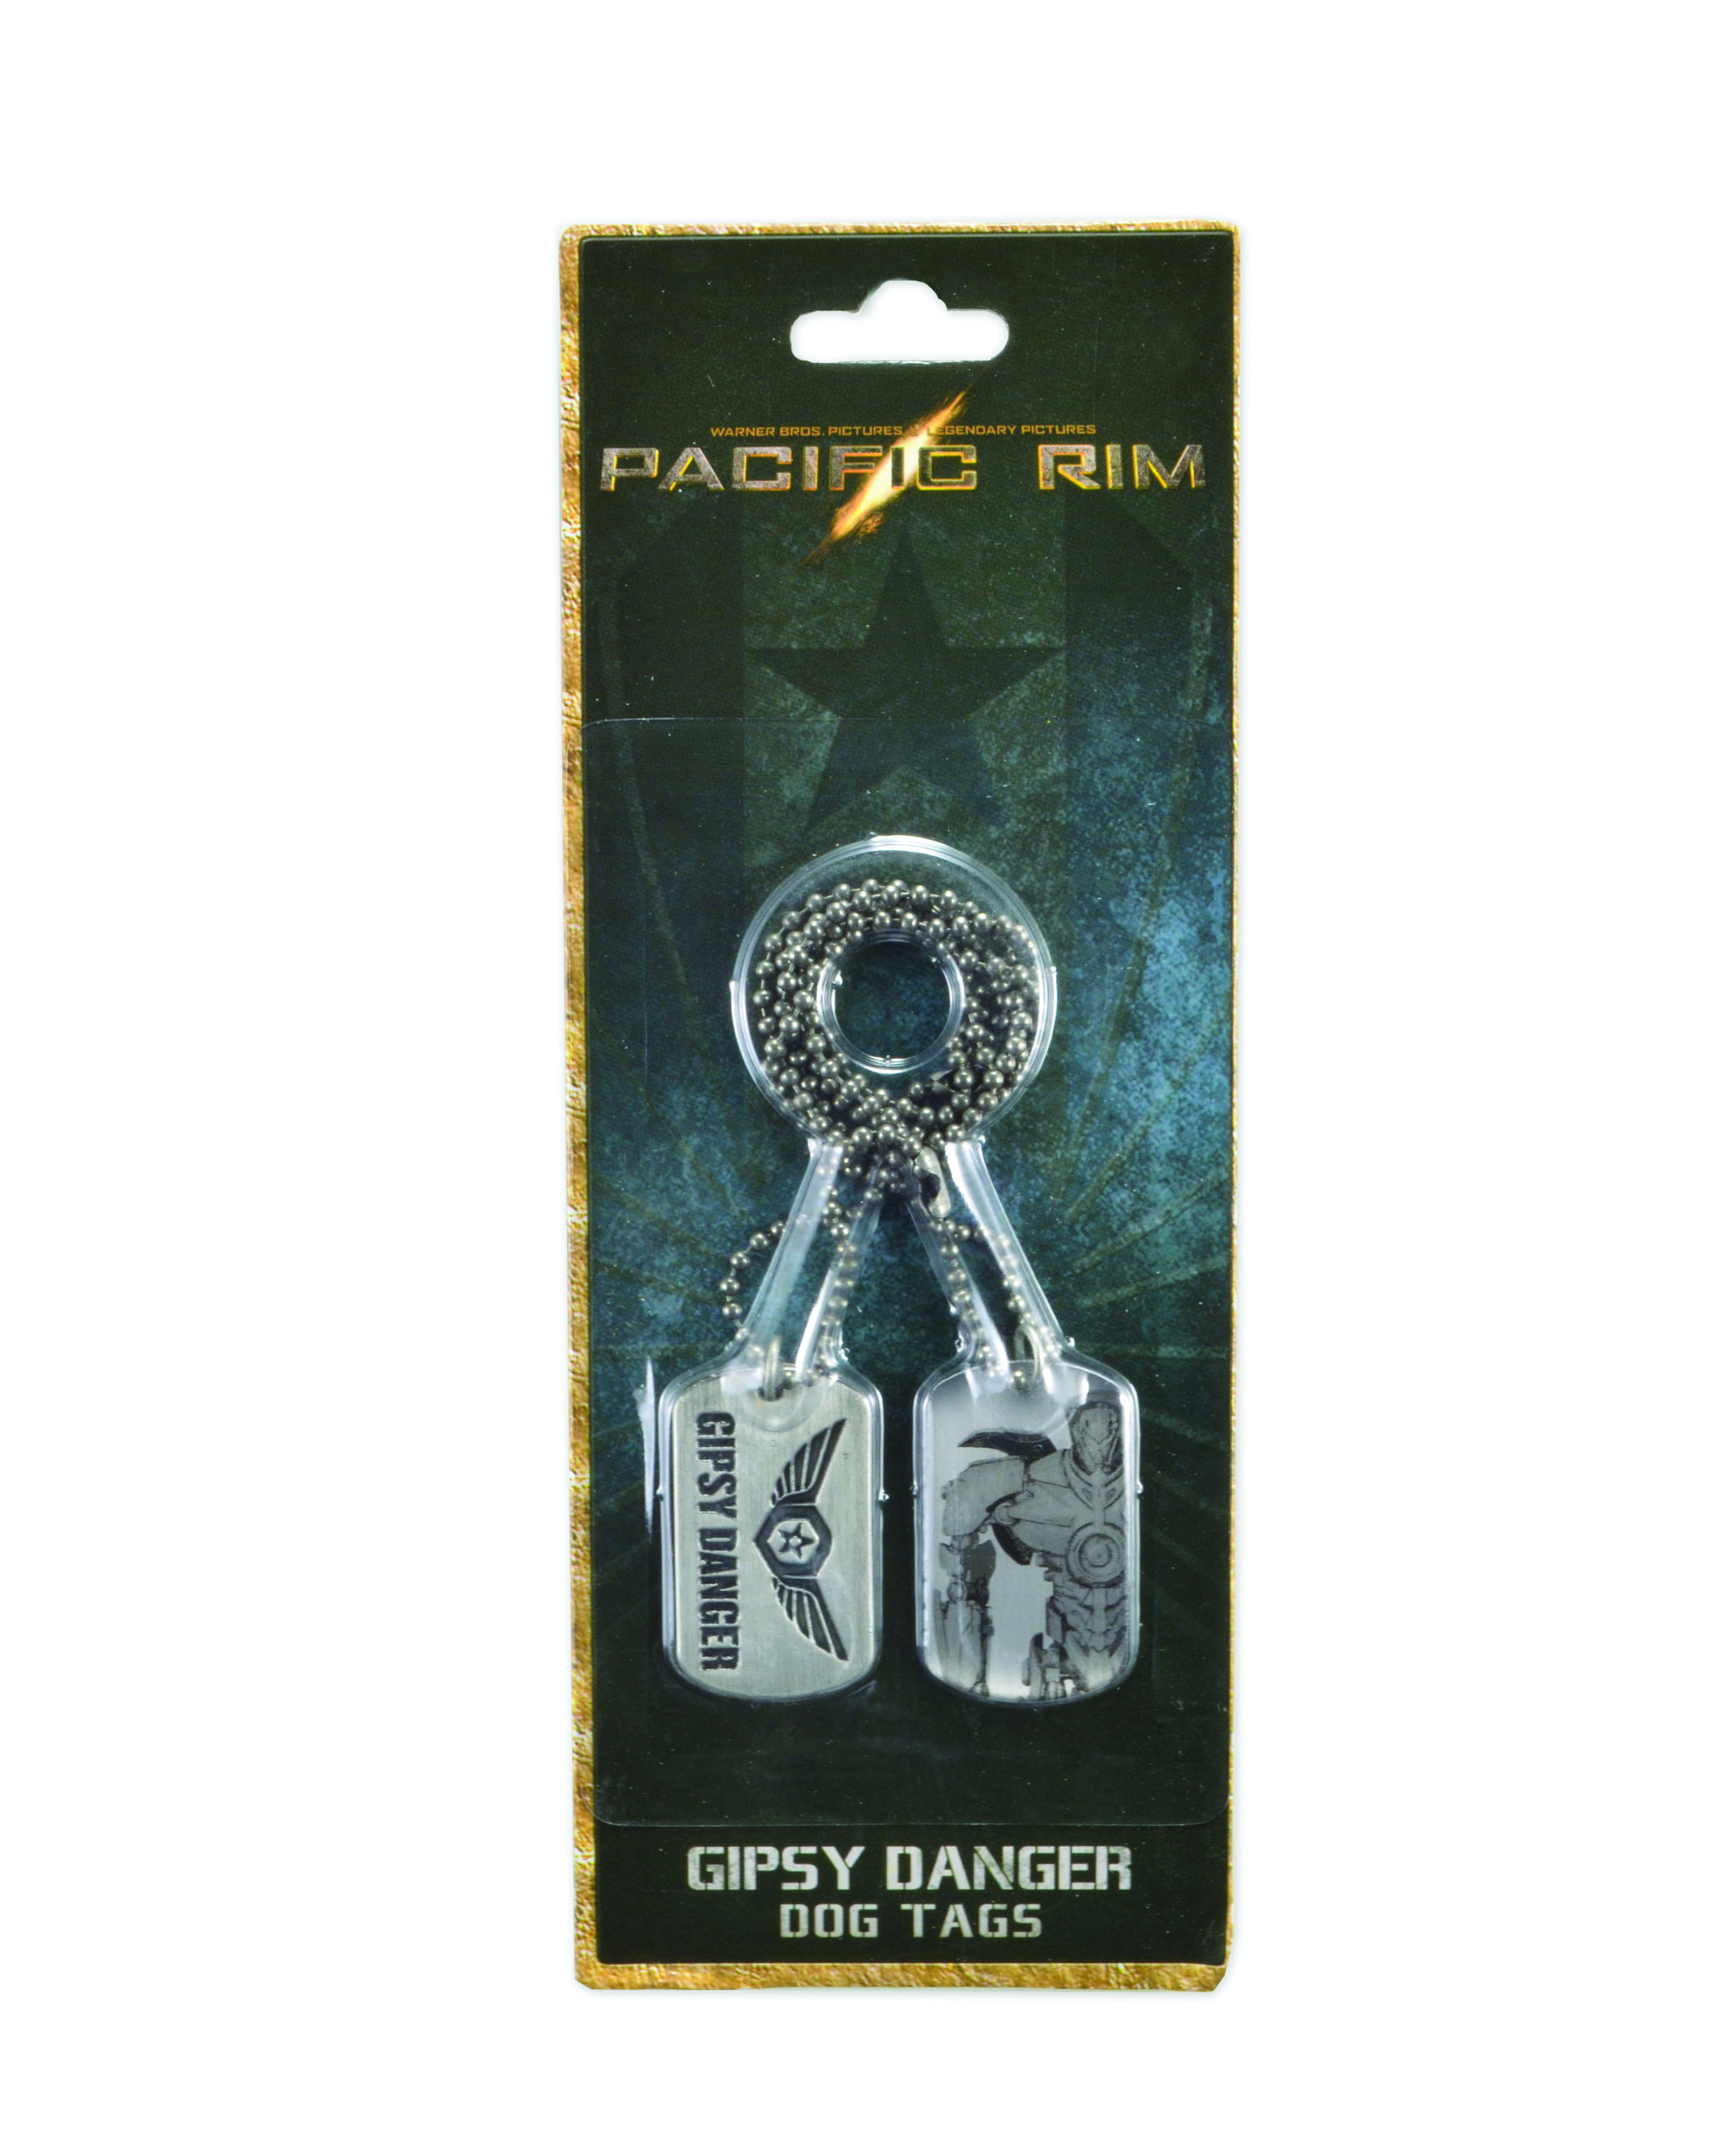 PACIFIC RIM GIPSY DANGER DOG TAGS